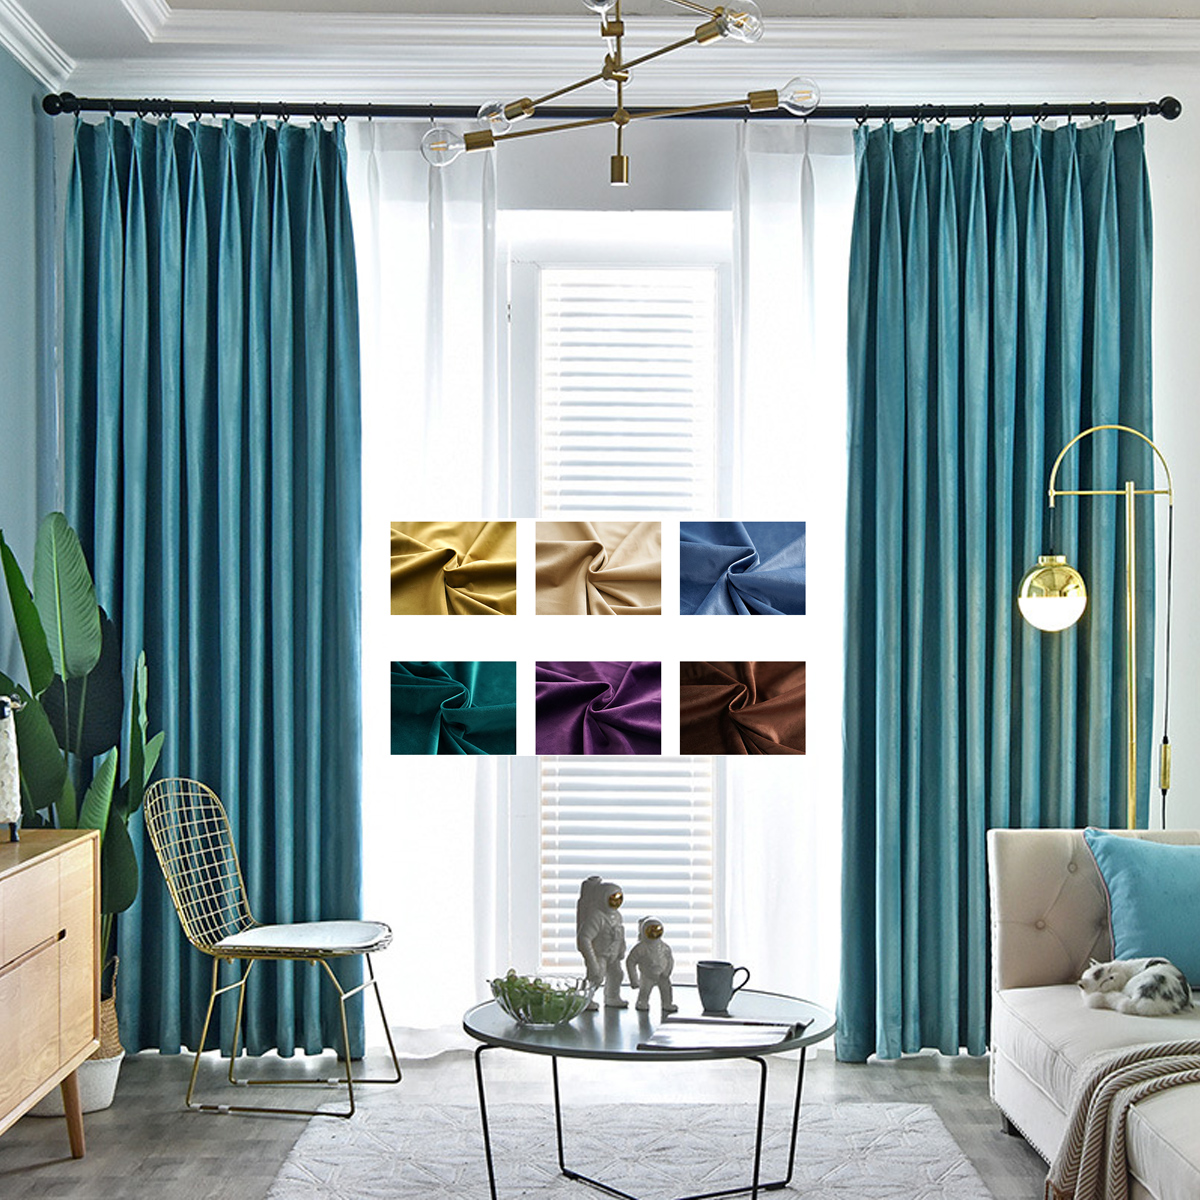 Us 6 85 40 Off Blackout Luxury Velvet Curtains For Living Room Bedroom Solid Plain Window Door Curtain Drape Tulle Green Blue Brown Yellow In